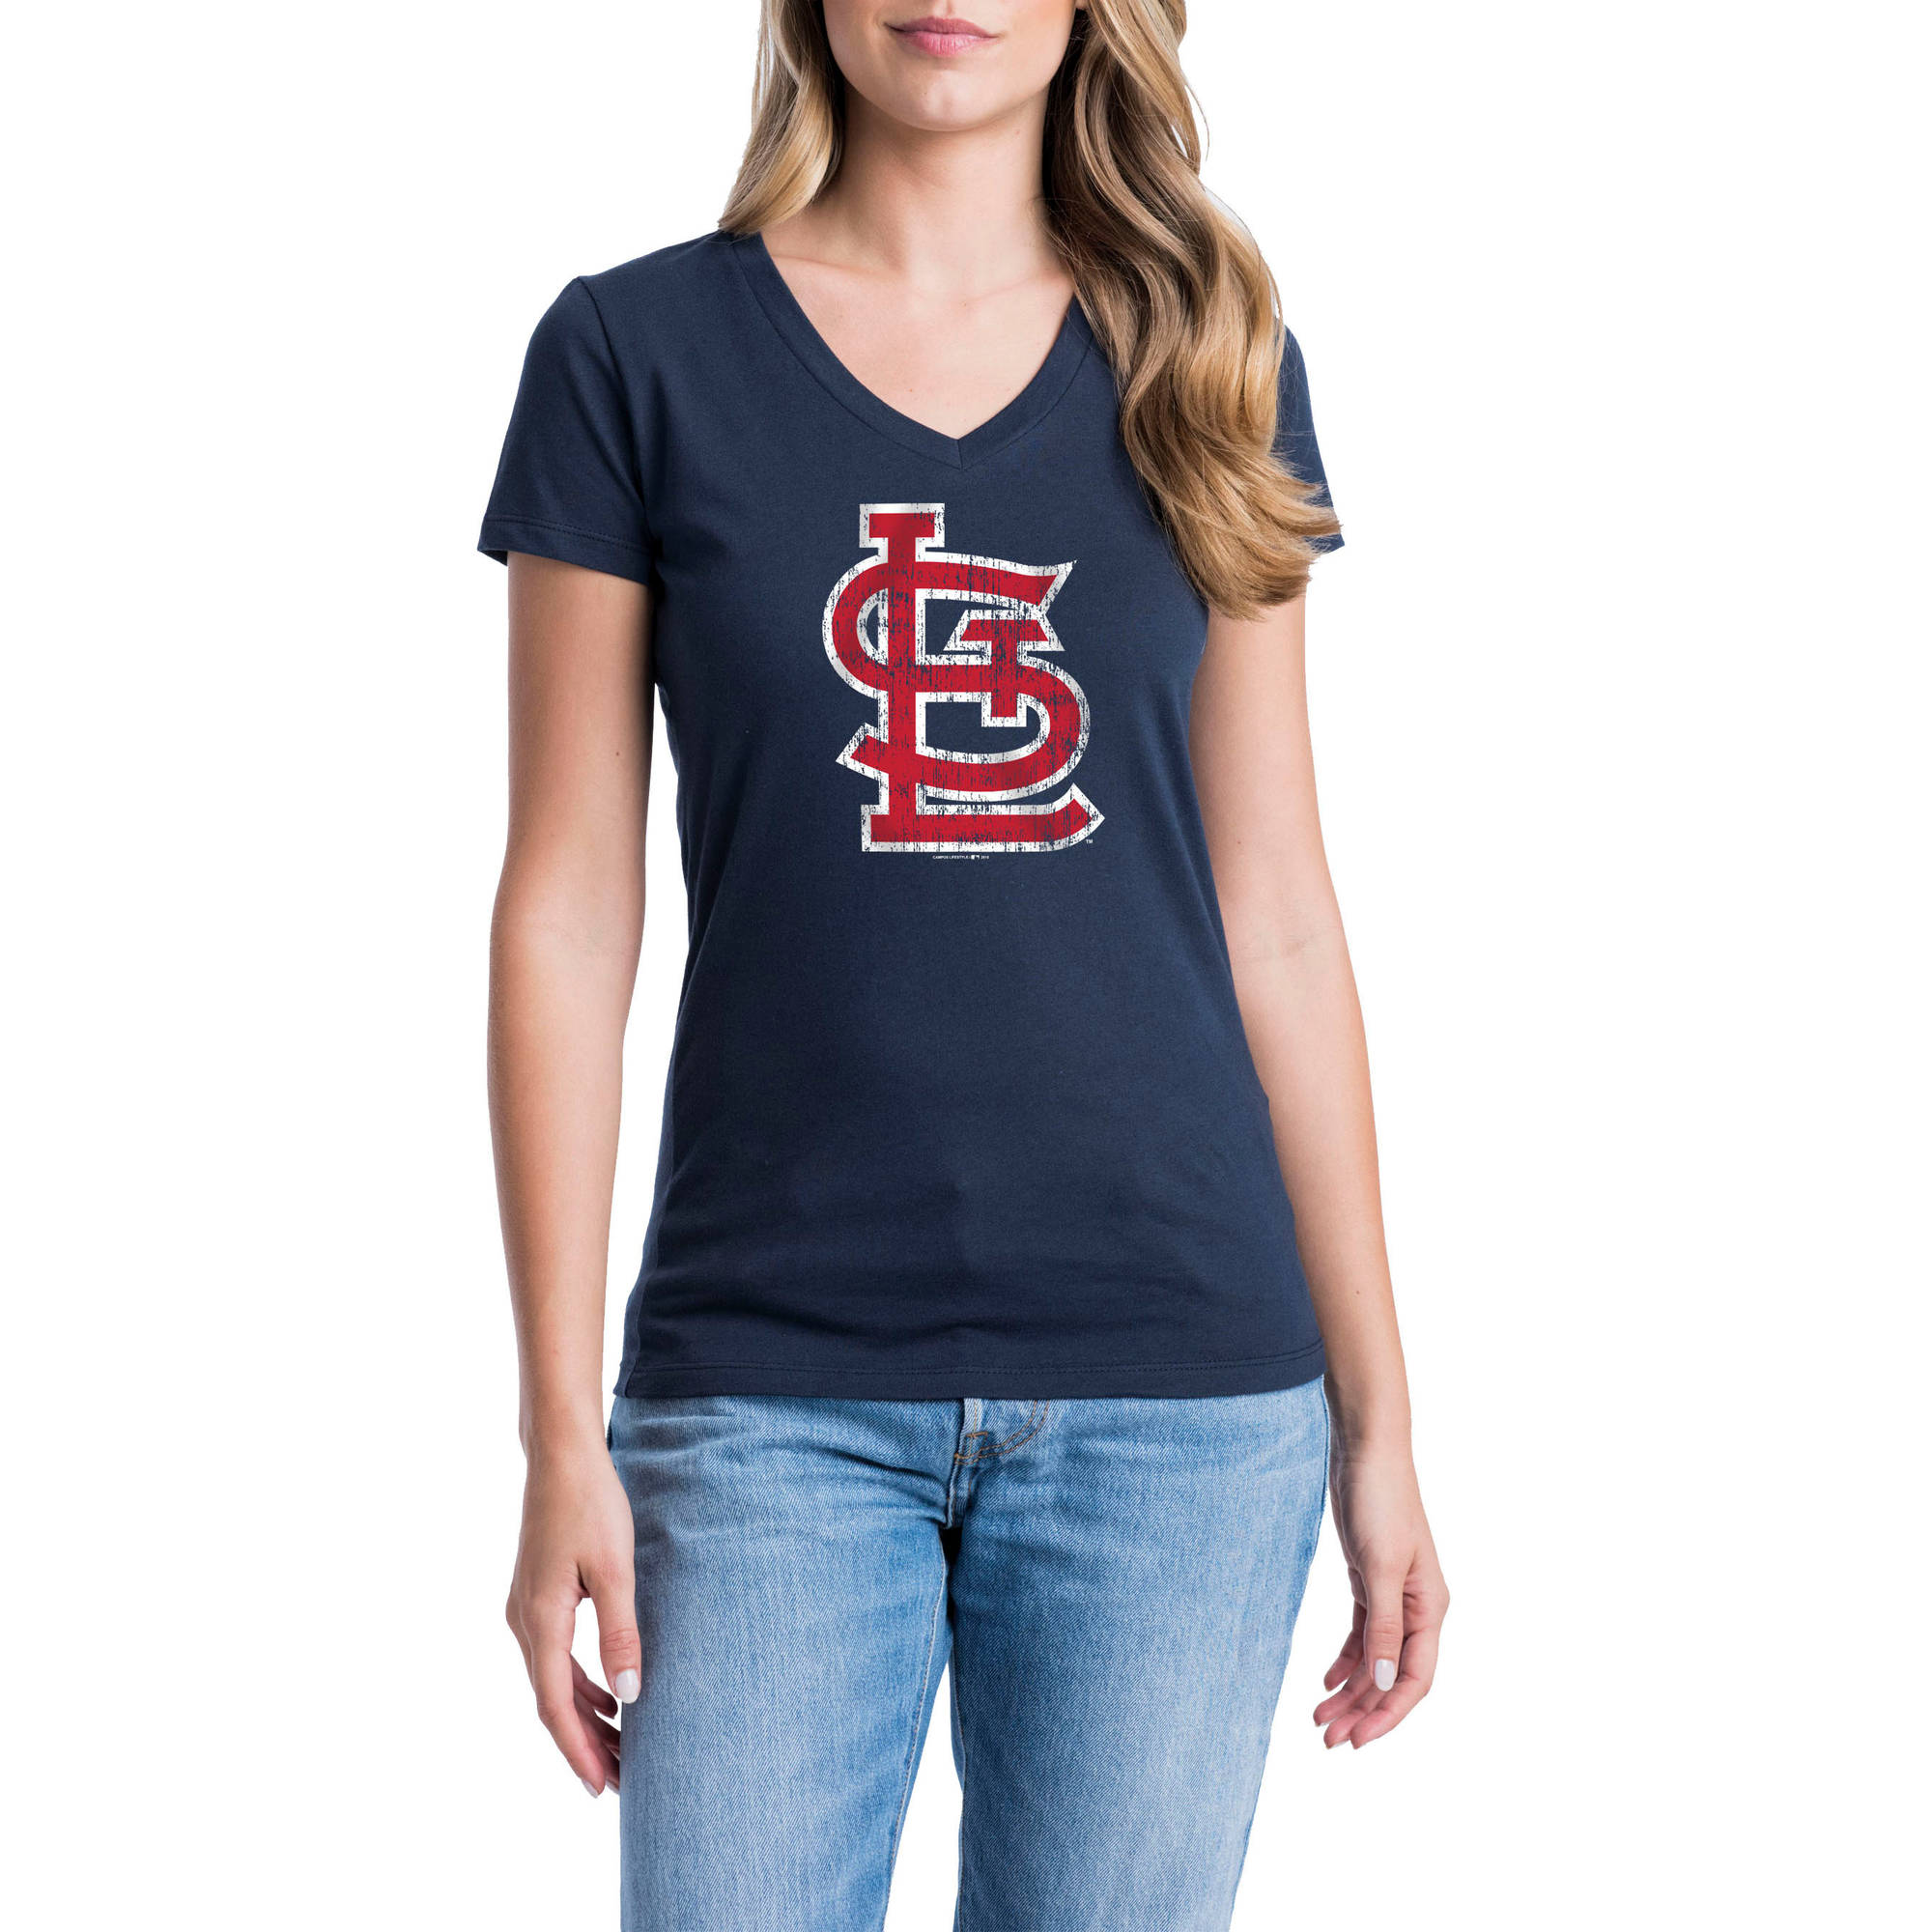 St. Louis Cardinals Womens Short Sleeve Graphic Tee